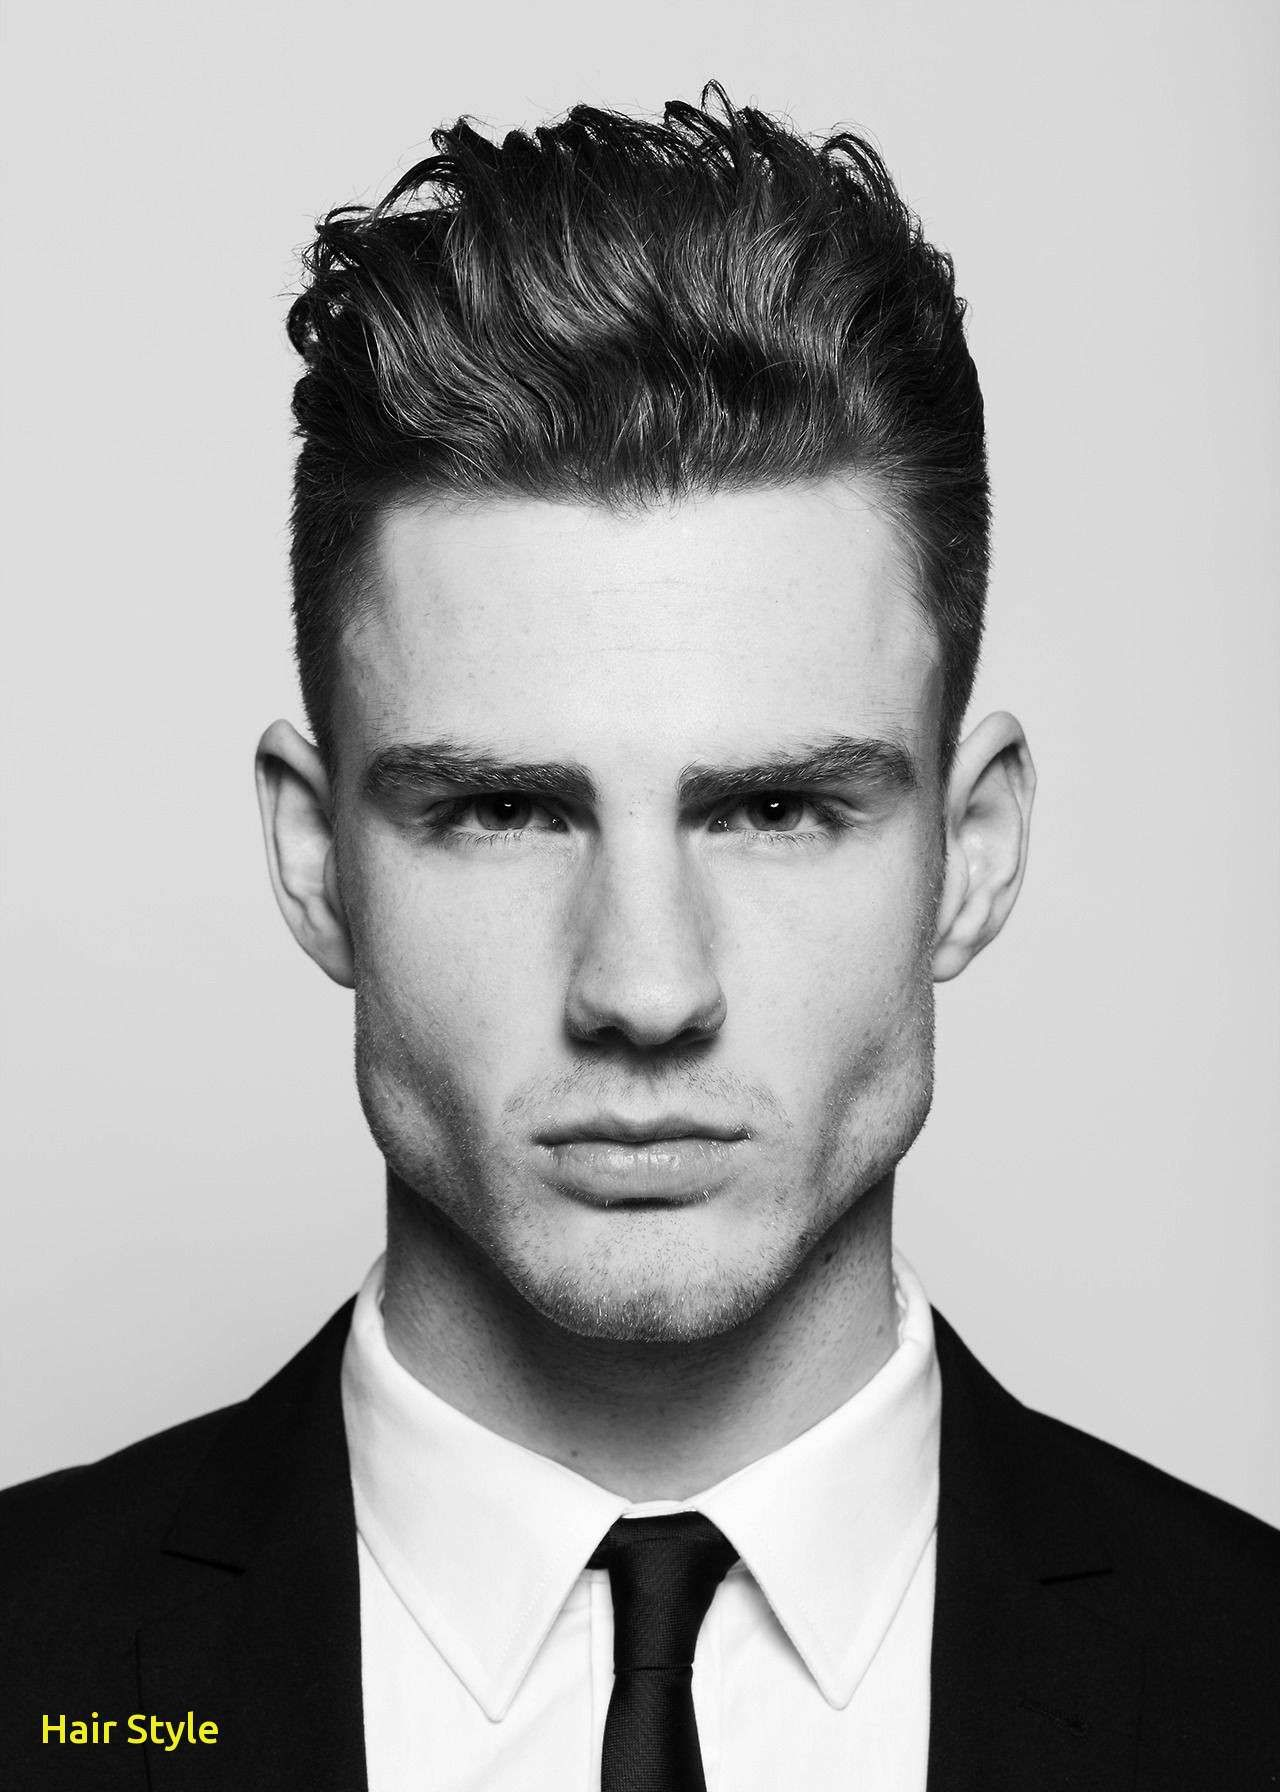 Oblong face haircut men eleganter sommer  haircuts male  haarschnitte  pinterest